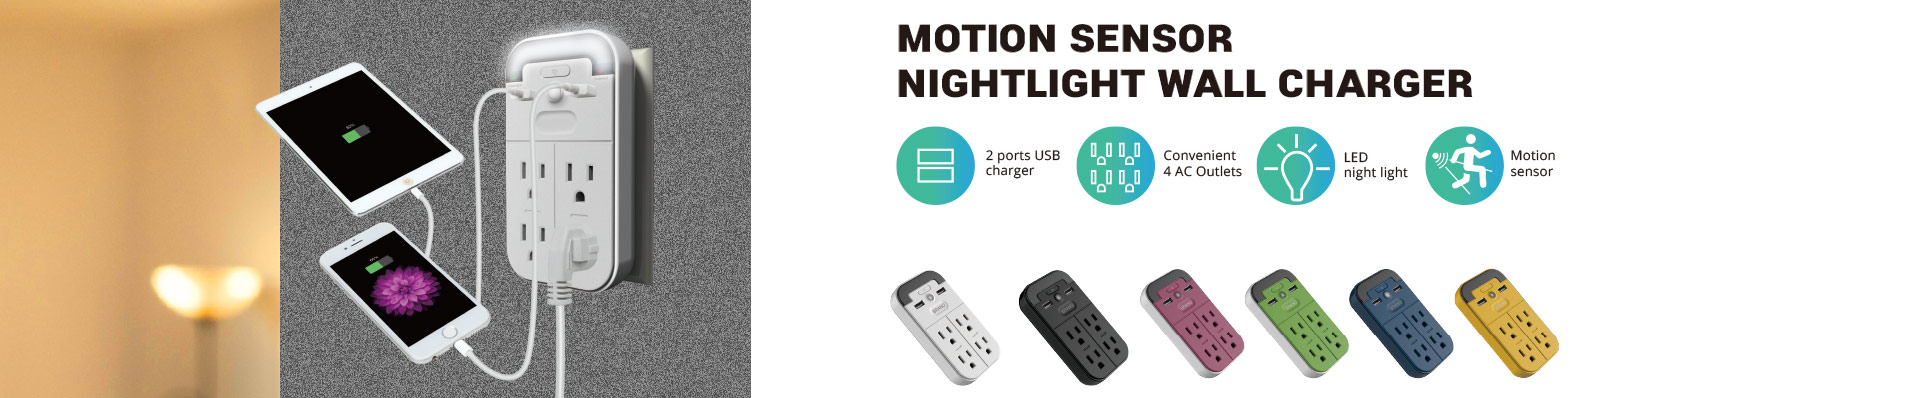 Motion Sensor Nightlight Wall Charger